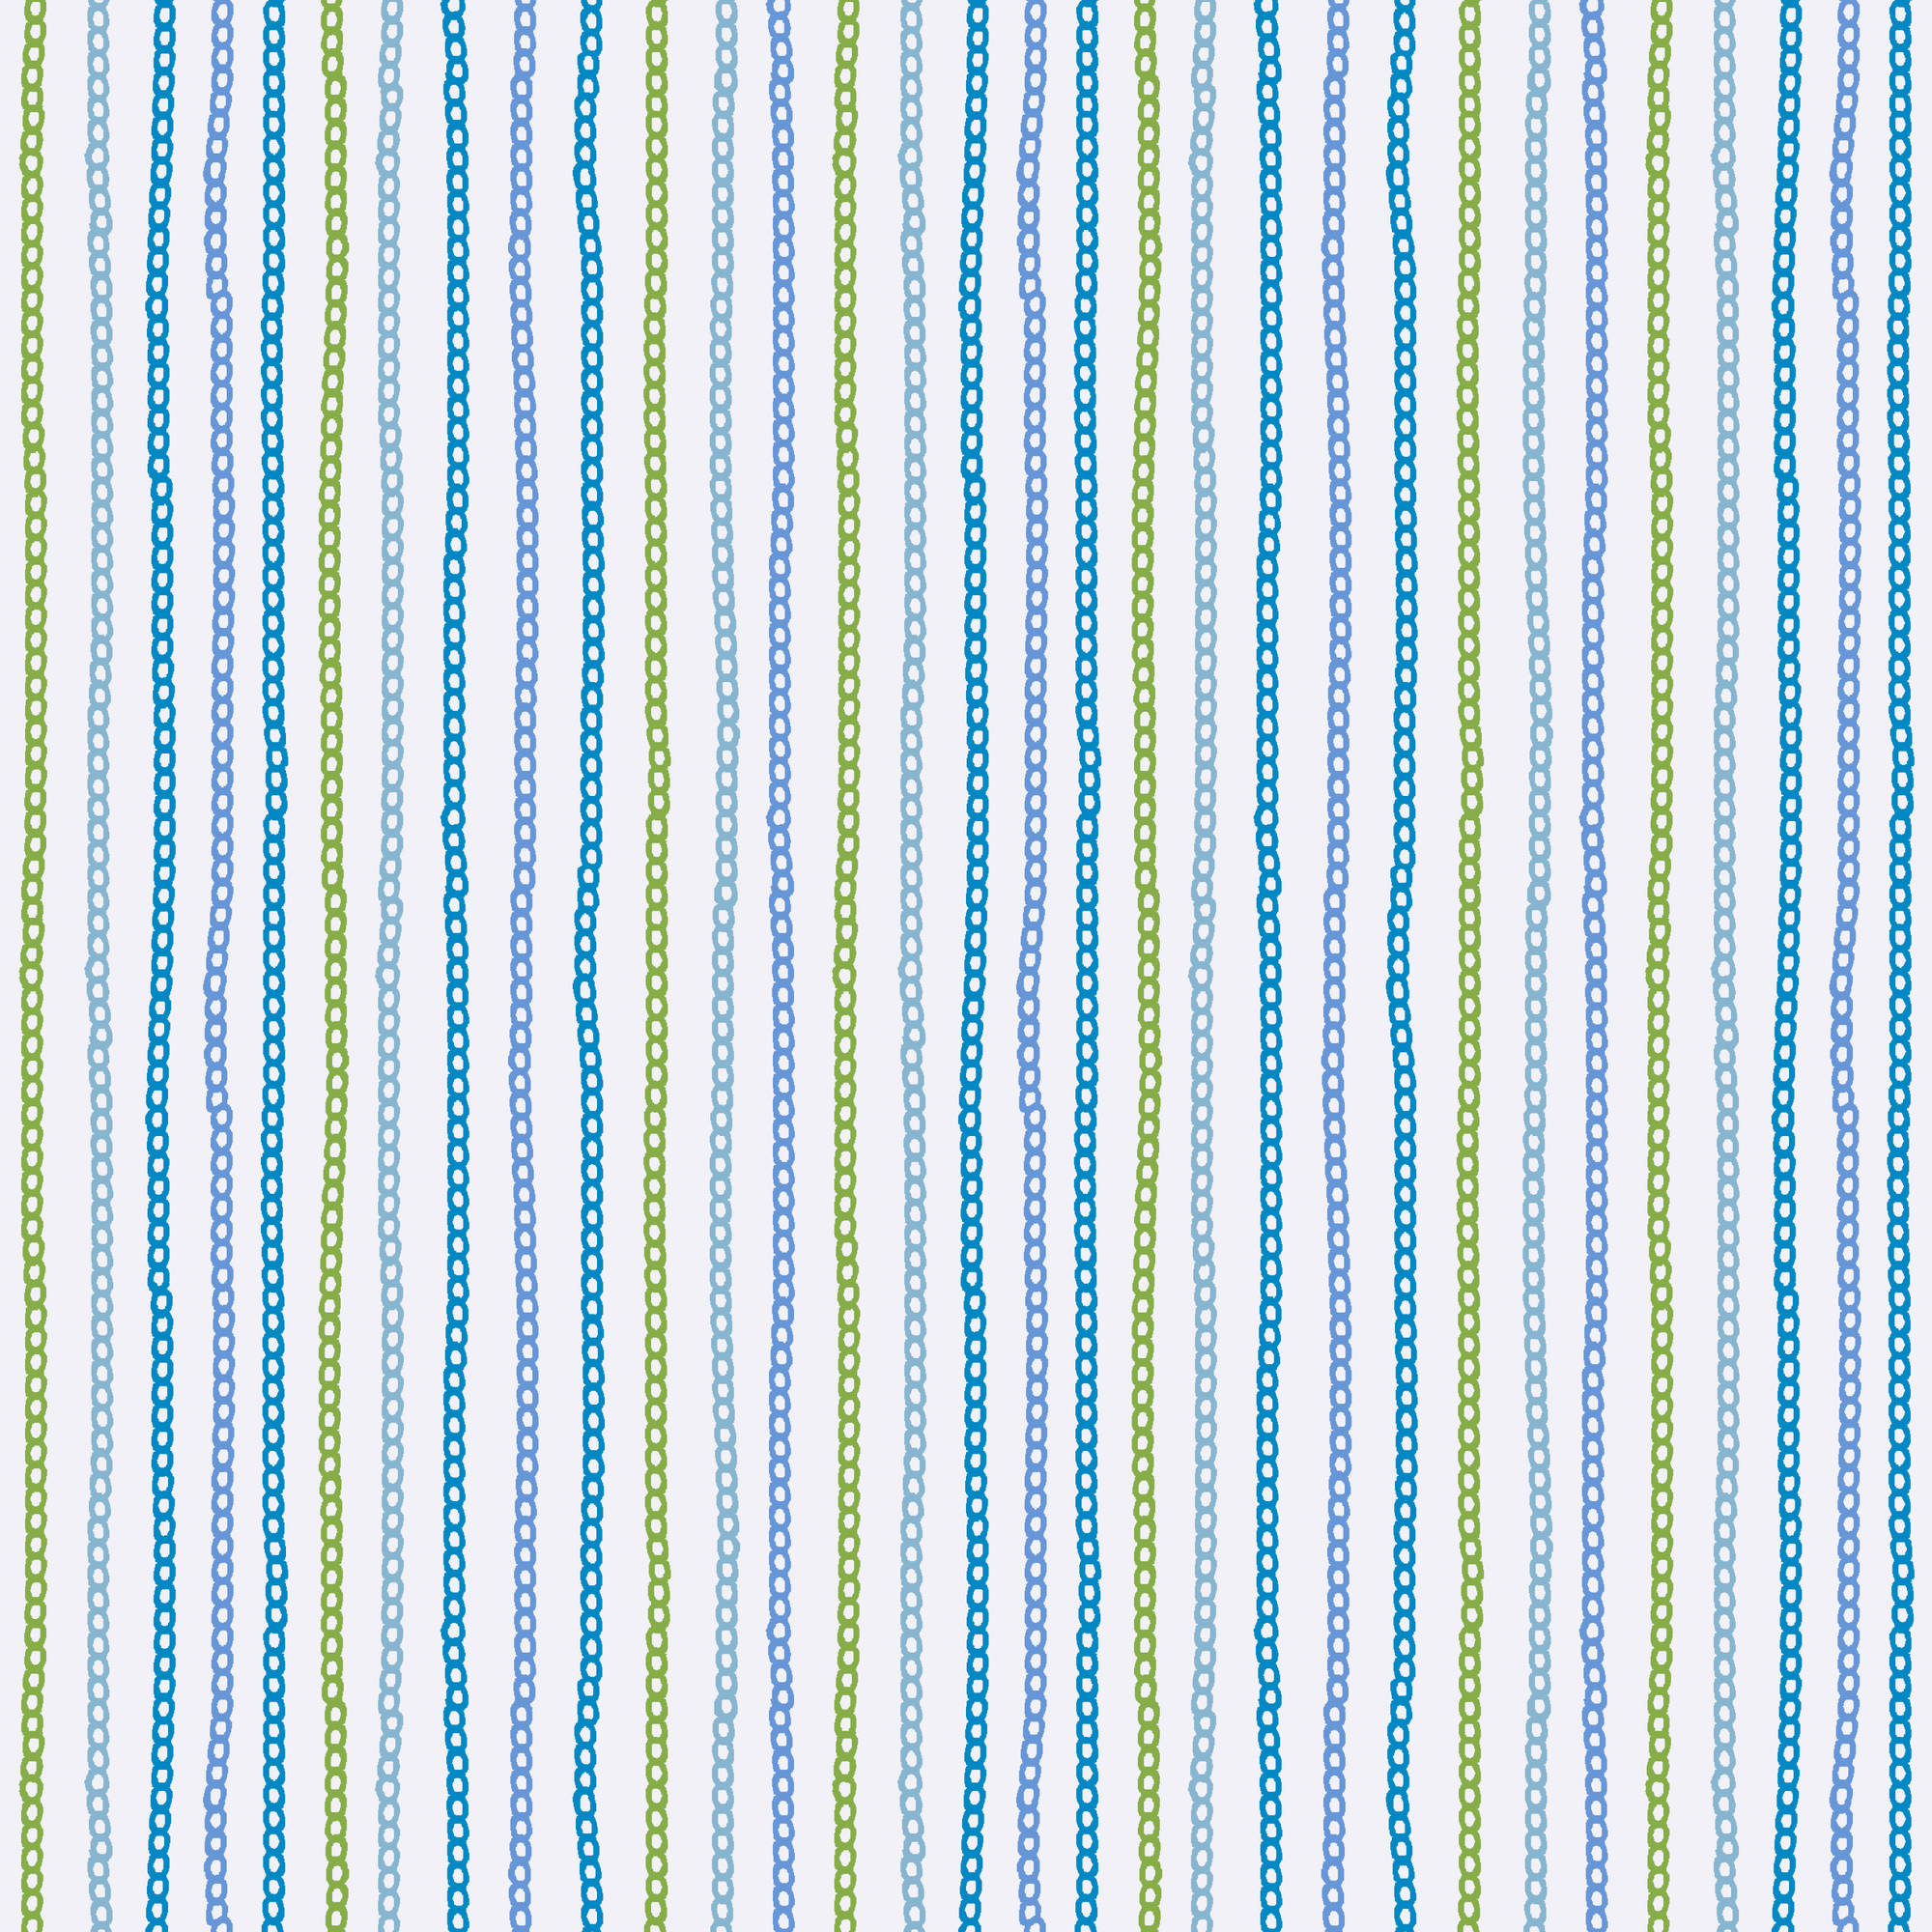 Waverly Inspirations CHAINS LGN 100% Cotton Print fabric, Quilting fabric, Home Decor ,44'', 140GSM